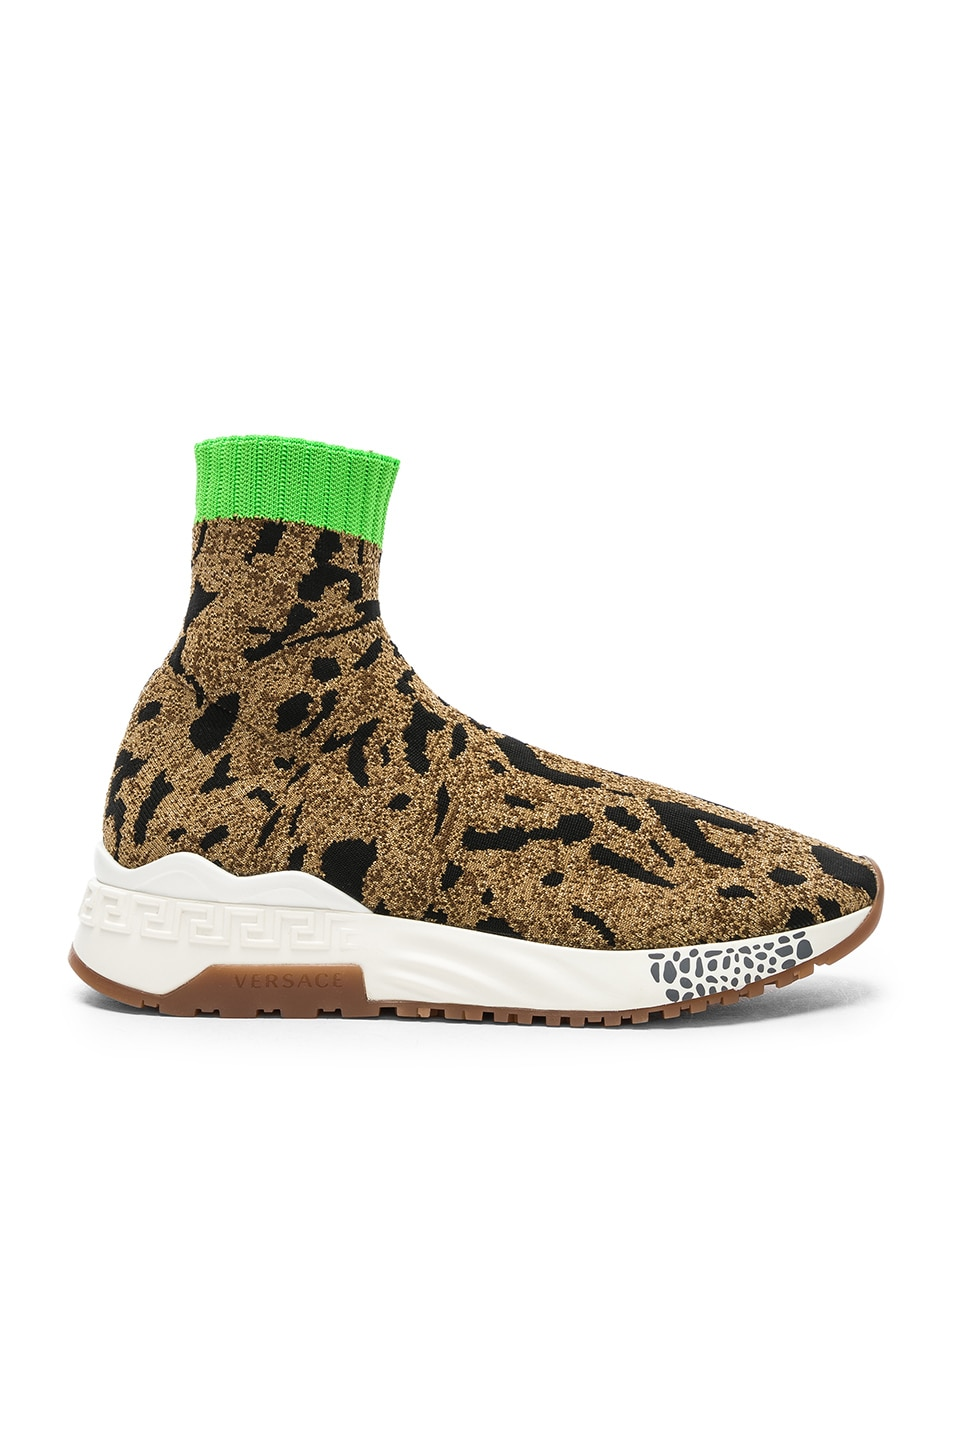 VERSACE VERSACE LEOPARD PRINTED SOCK SNEAKERS IN METALLIC,BROWN,ANIMAL PRINT